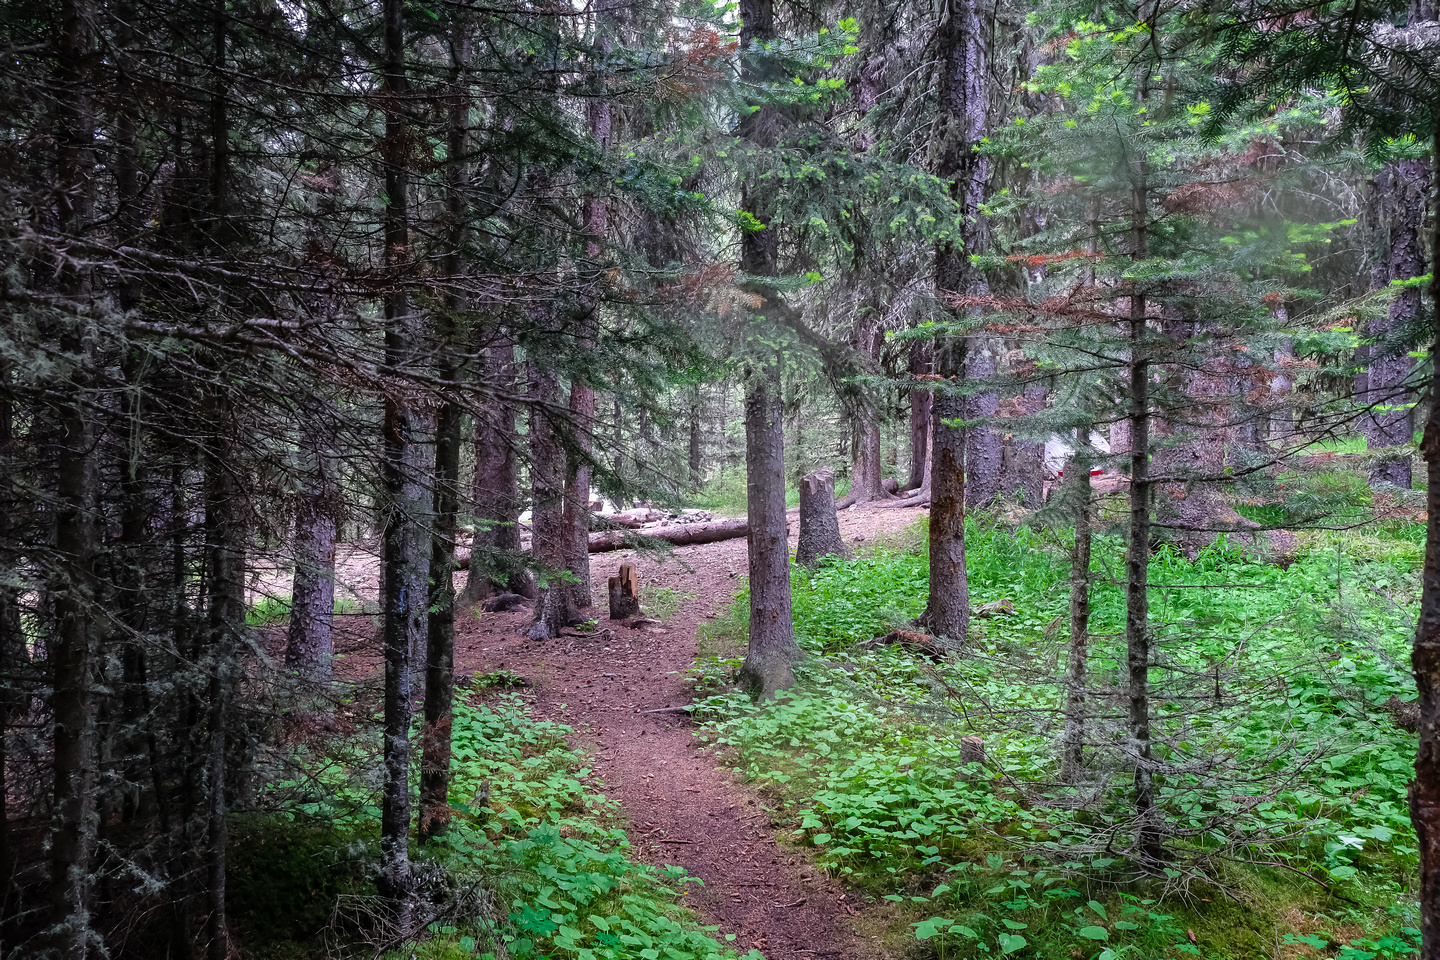 One of the large camps along the trail.